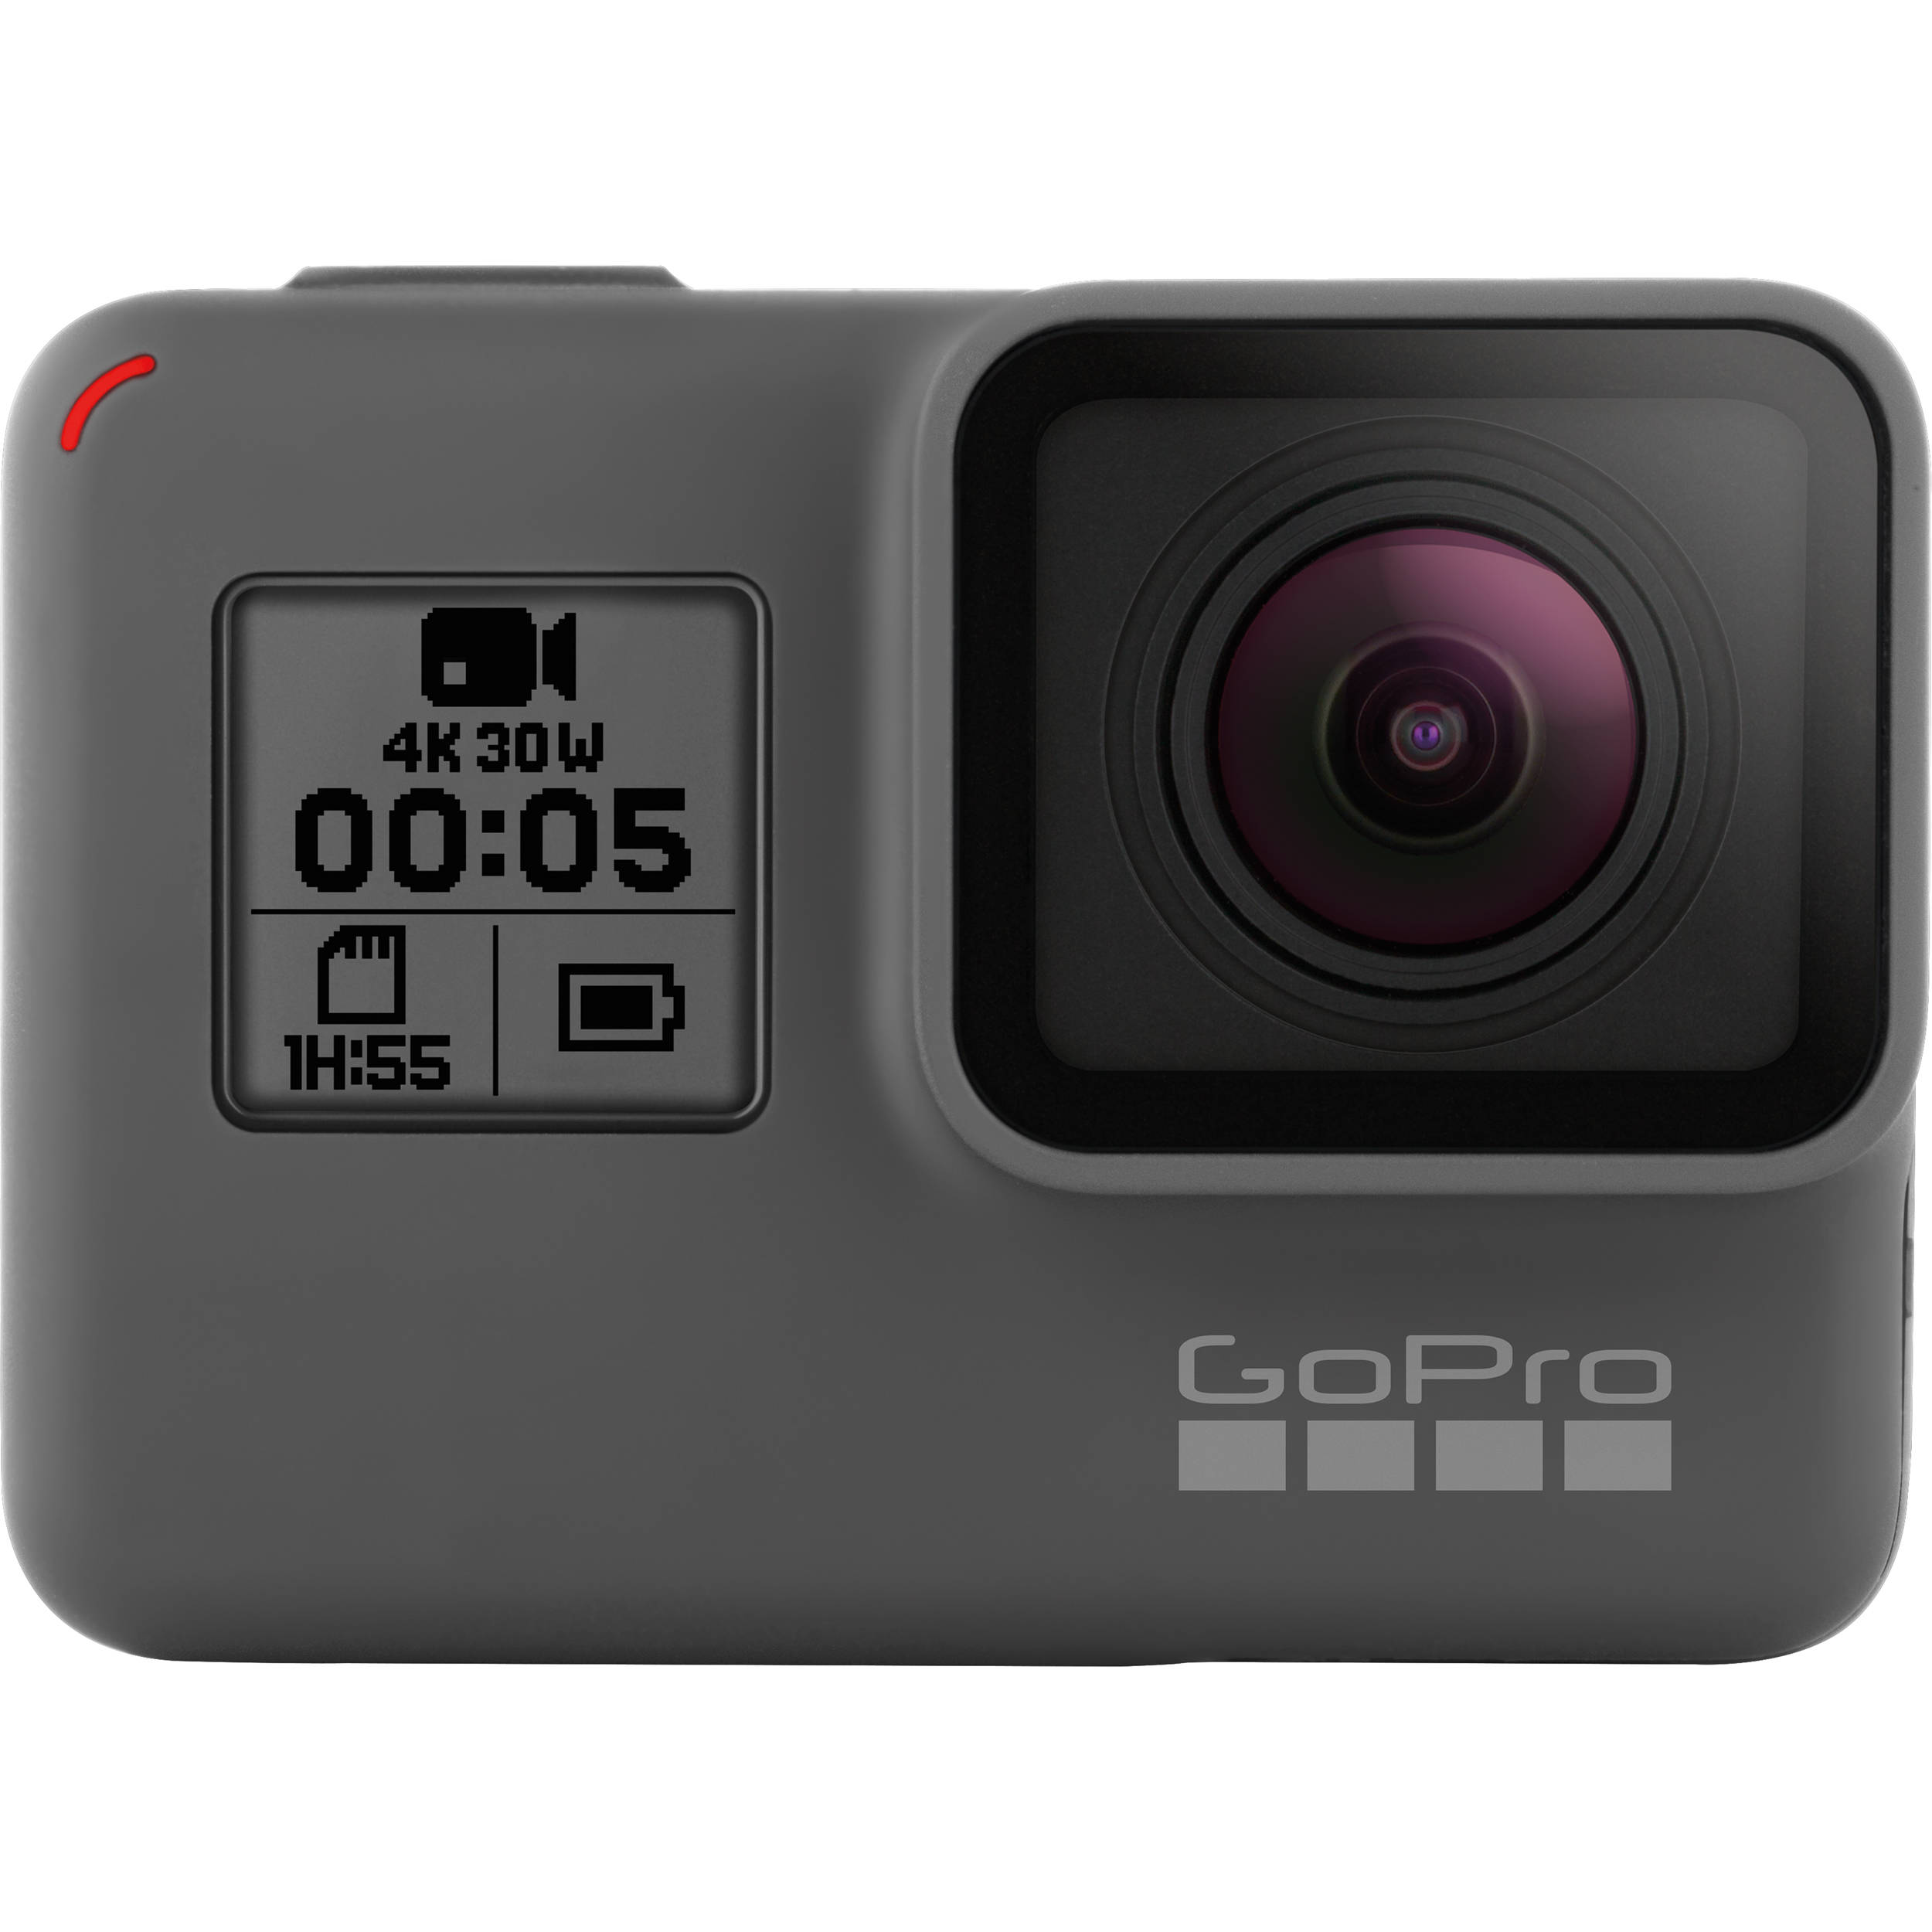 gopro hero5 black chdhx 502 b h photo video. Black Bedroom Furniture Sets. Home Design Ideas